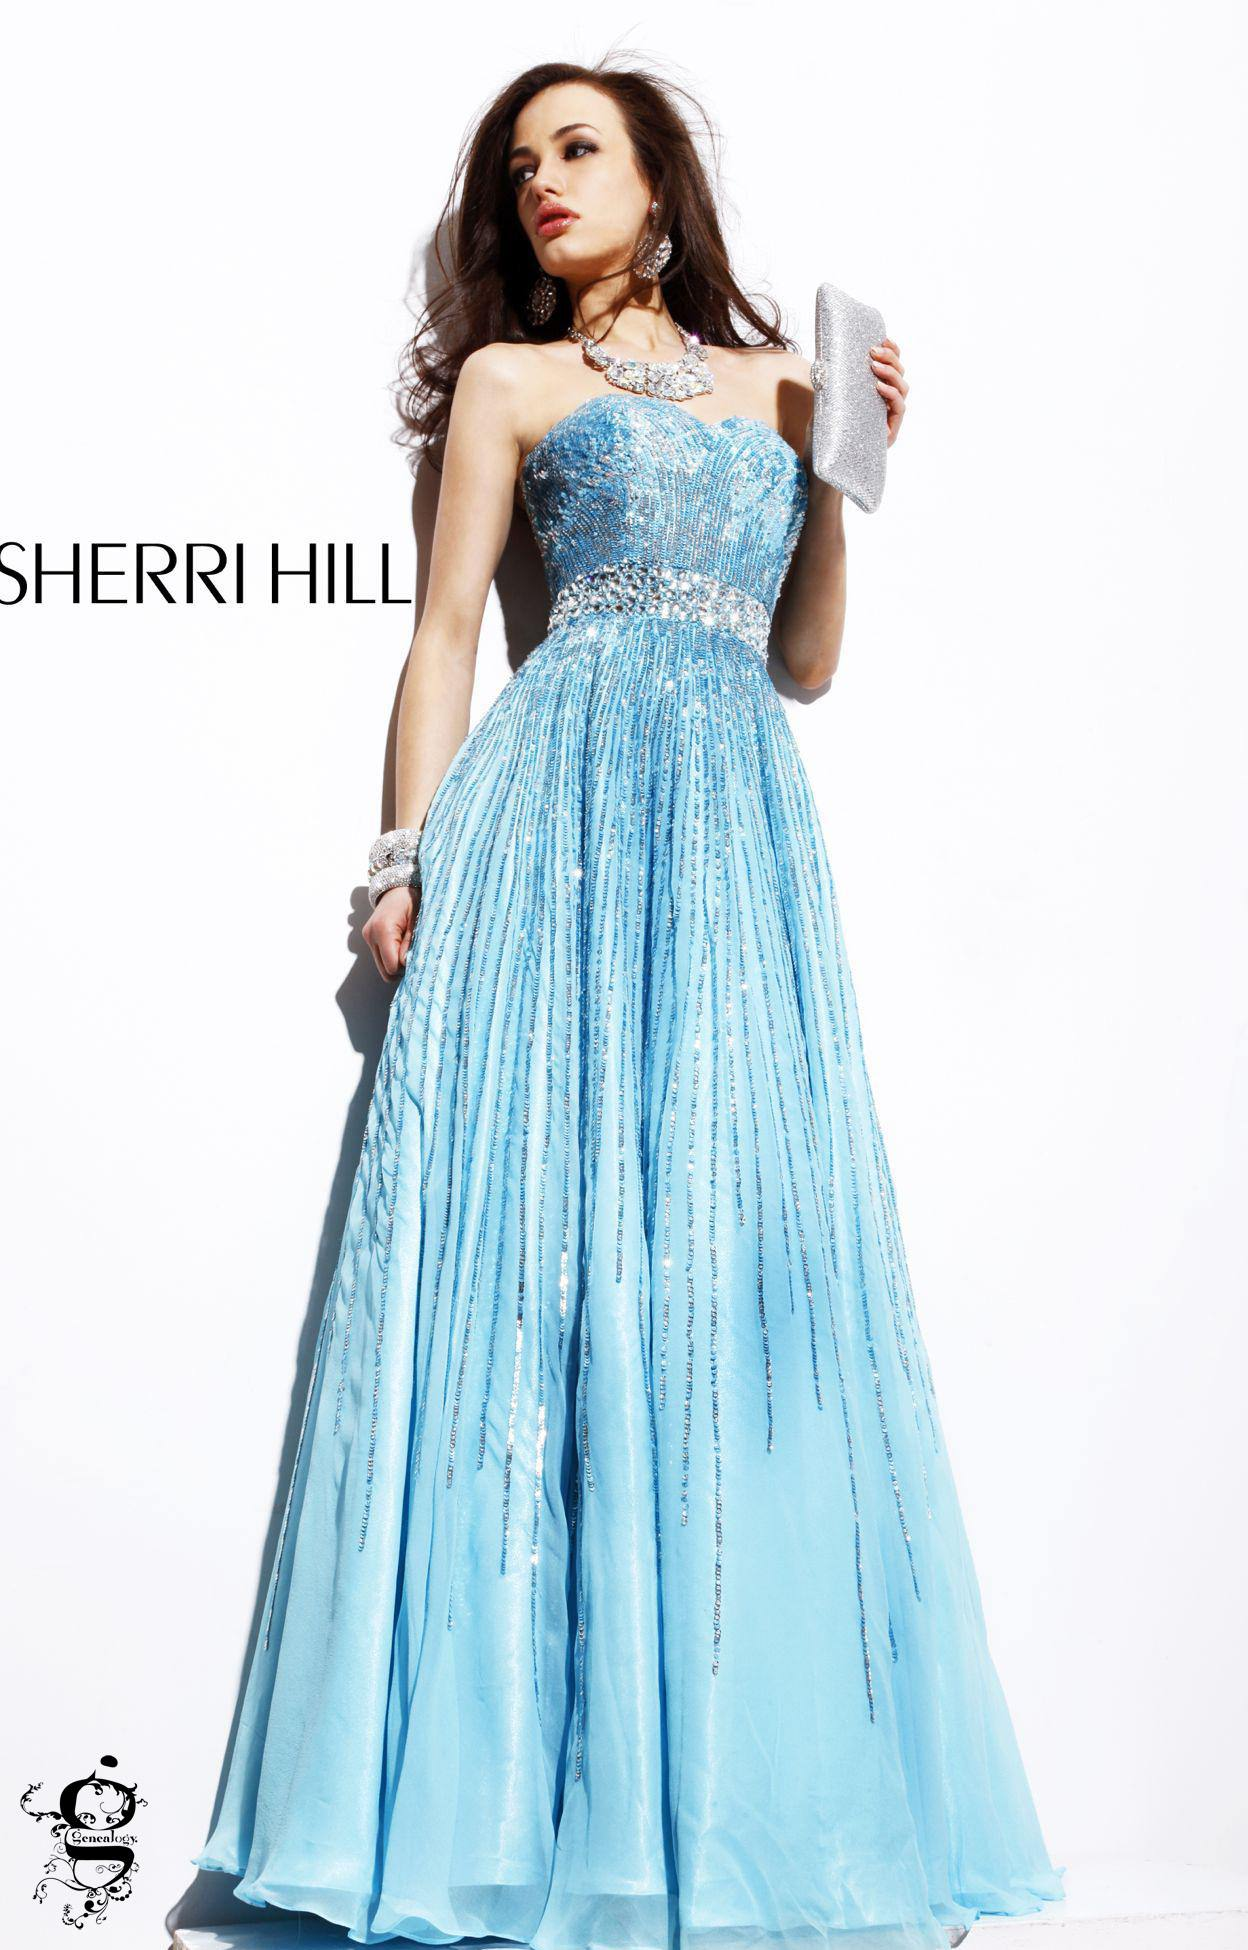 Contemporary Sadie Robertson Live Original By Sherri Hill Prom Dress ...